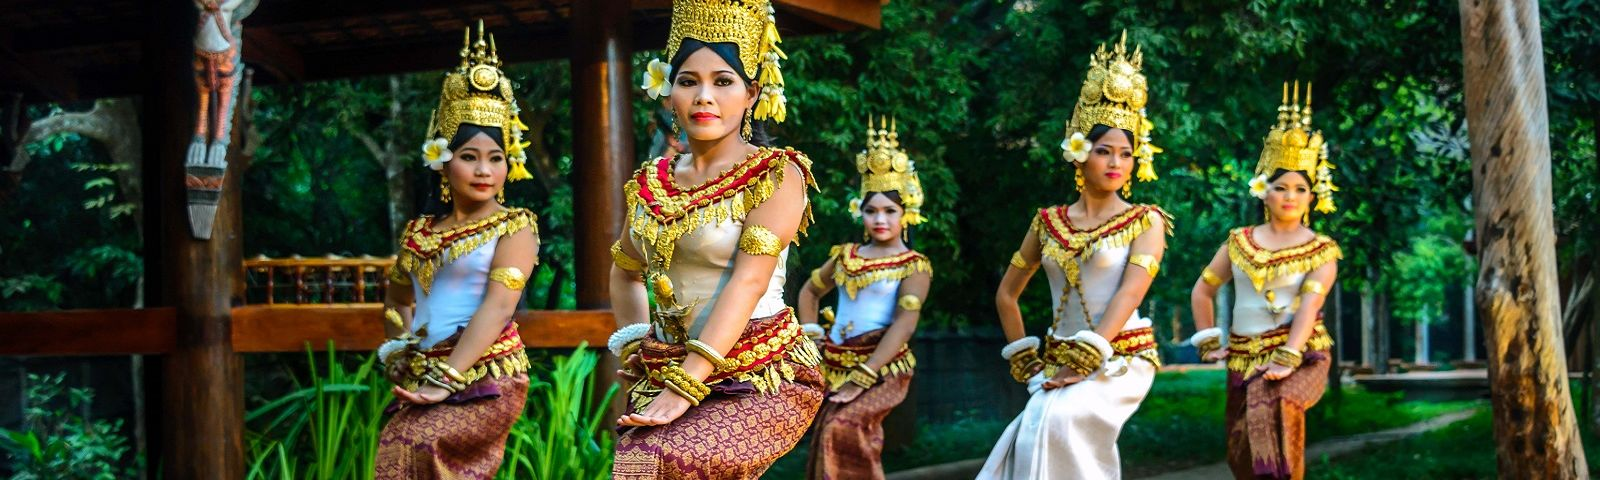 Being a Culture Vulture on your Cambodia Trip